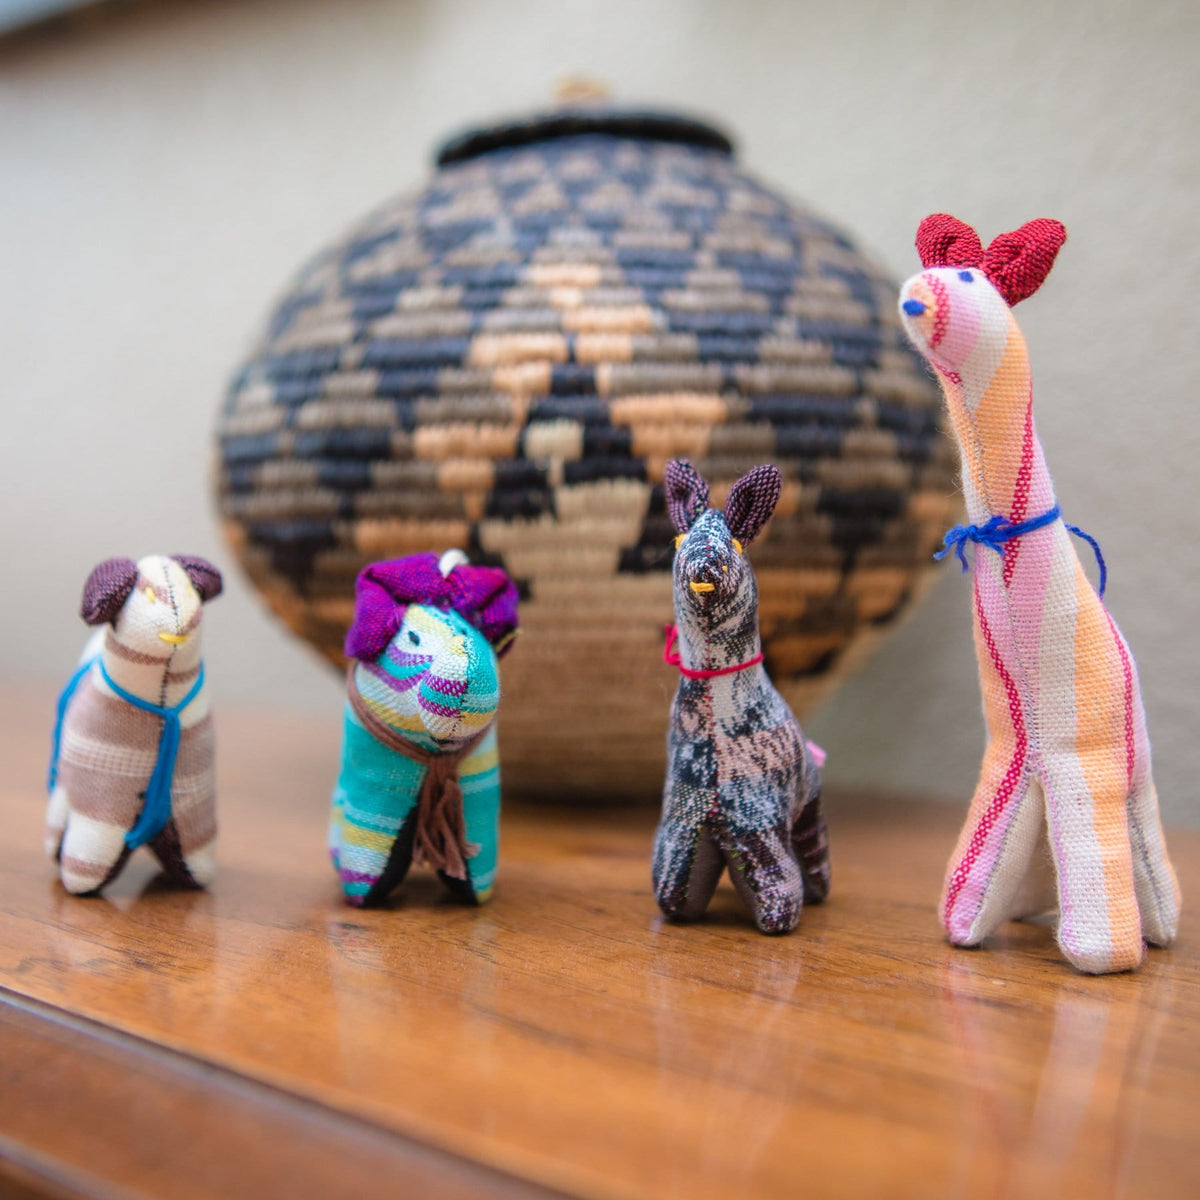 Group of Fair Trade Handmade Cotton Animal Toys In Use Lifestyle